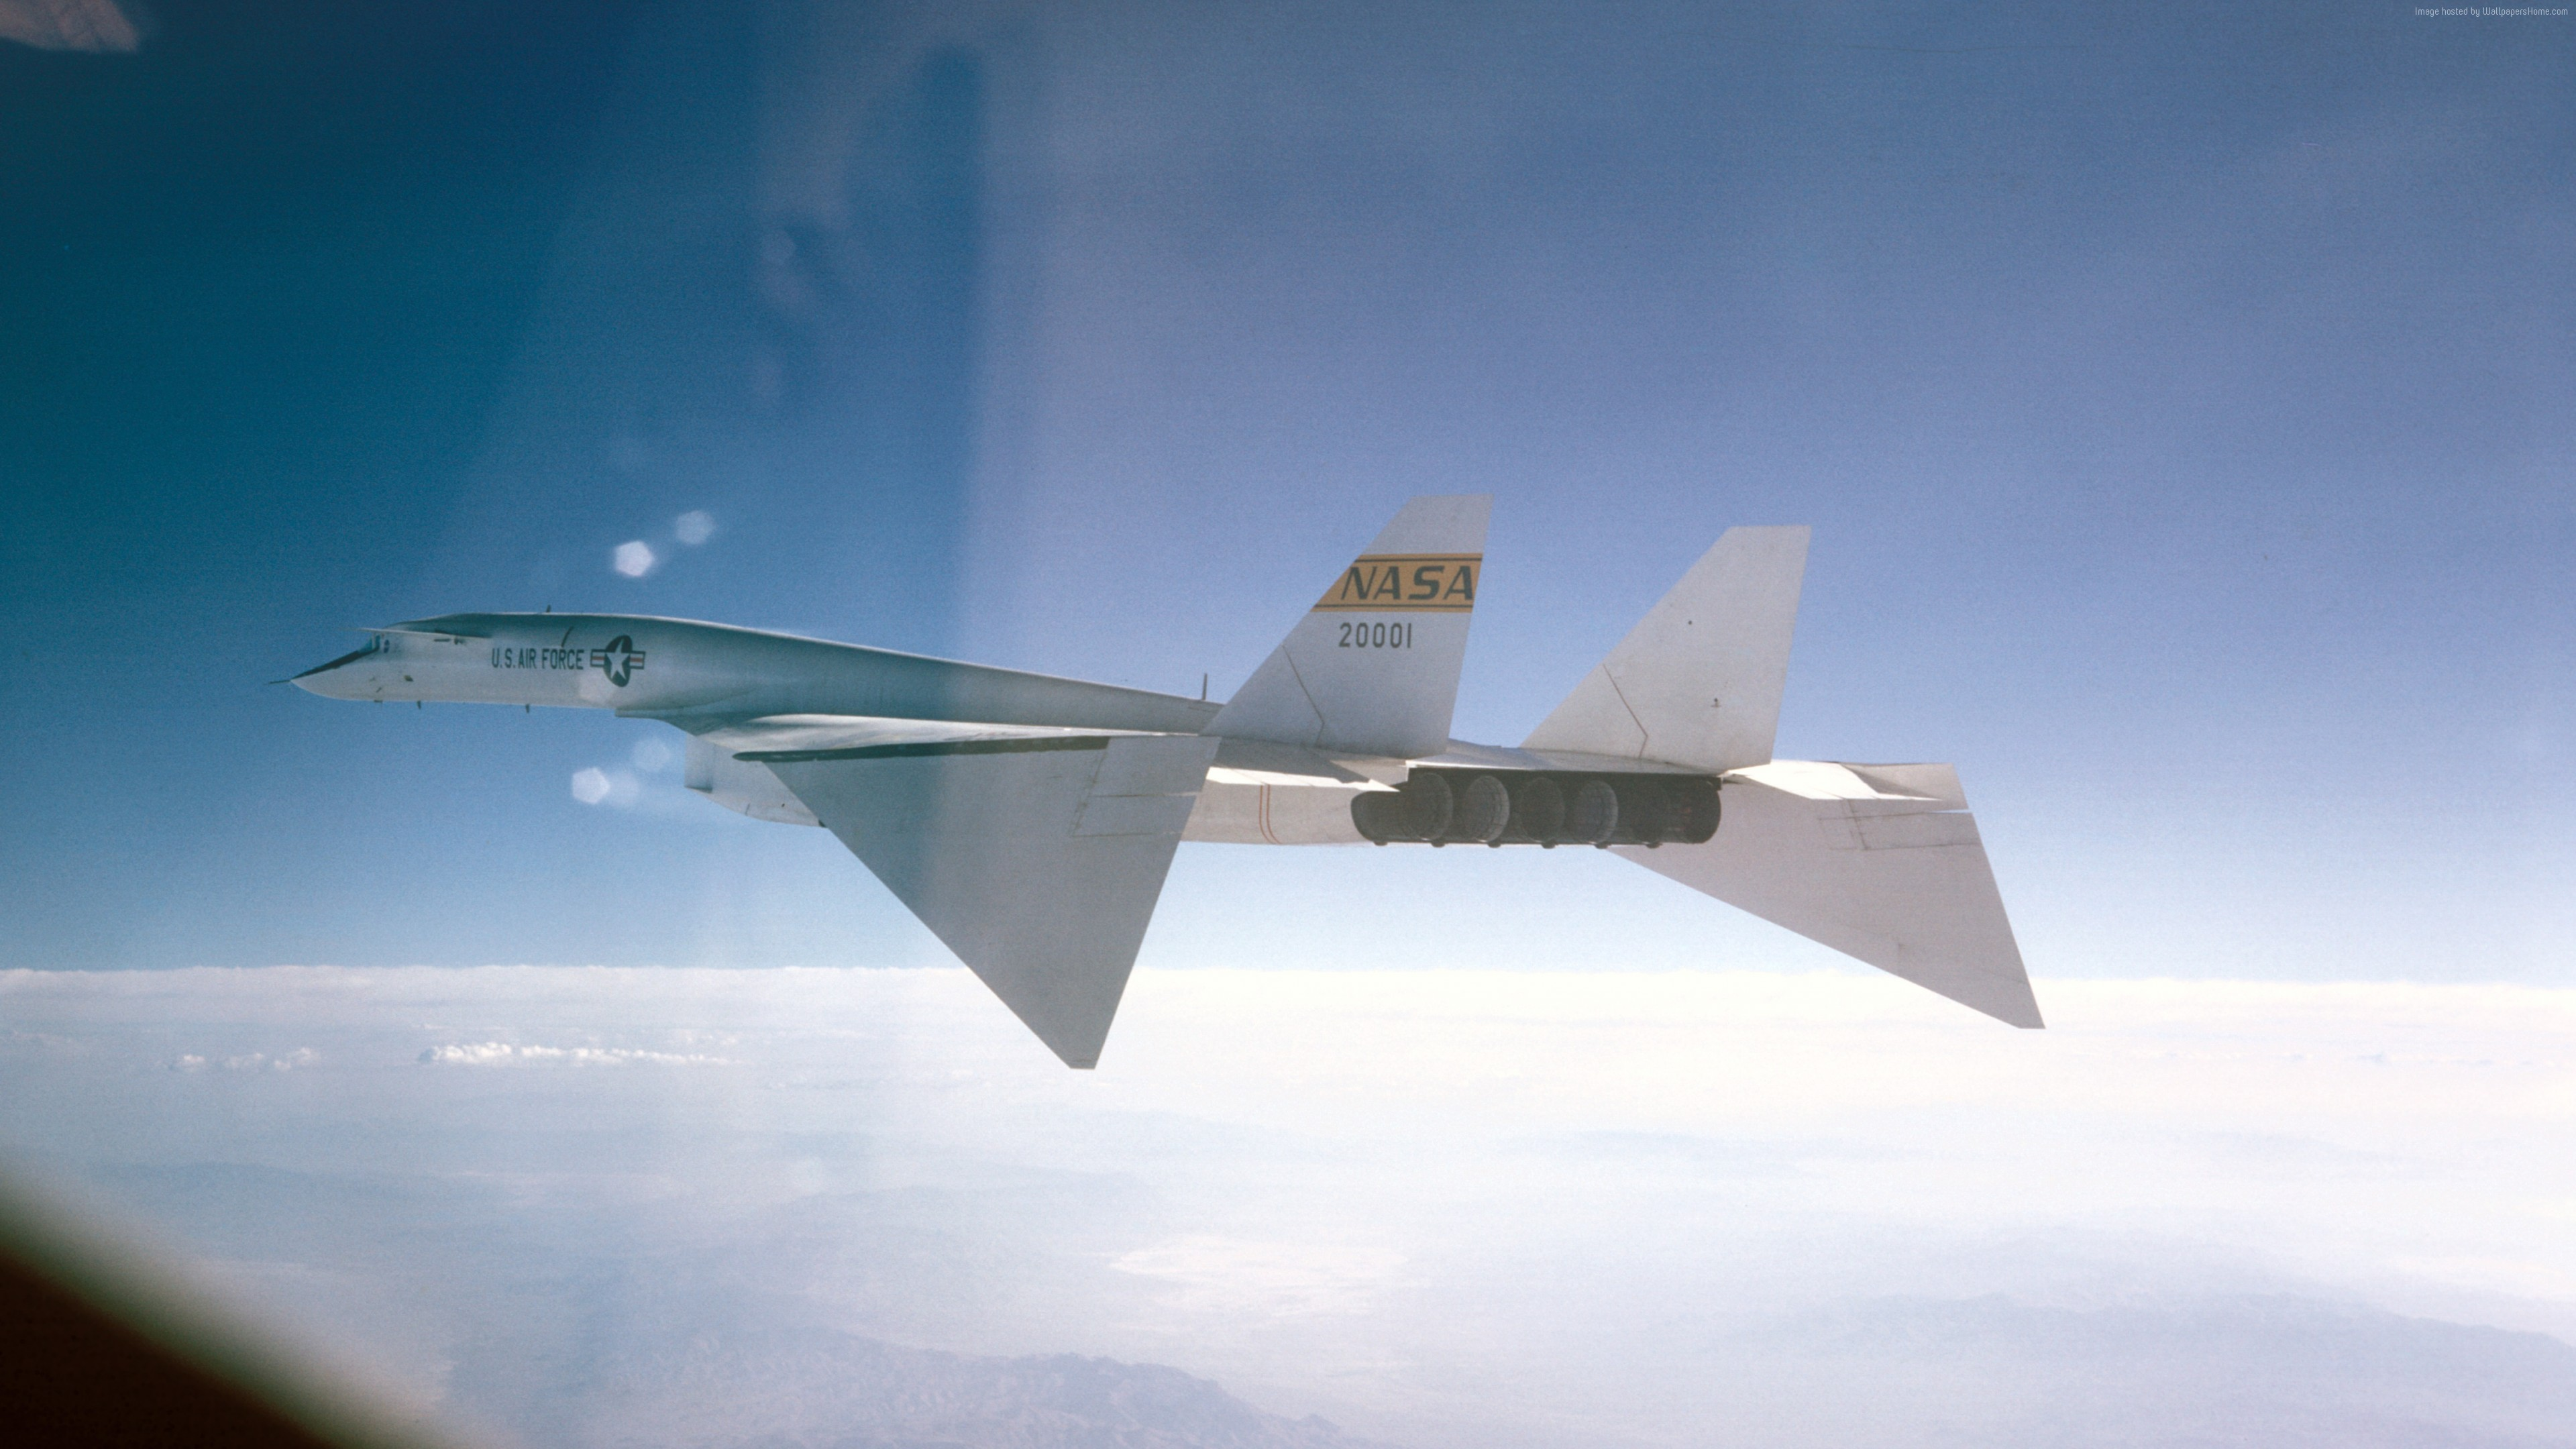 Wallpaper North American XB-70 Valkyrie, fighter aircraft, U.S. Air Force, Military